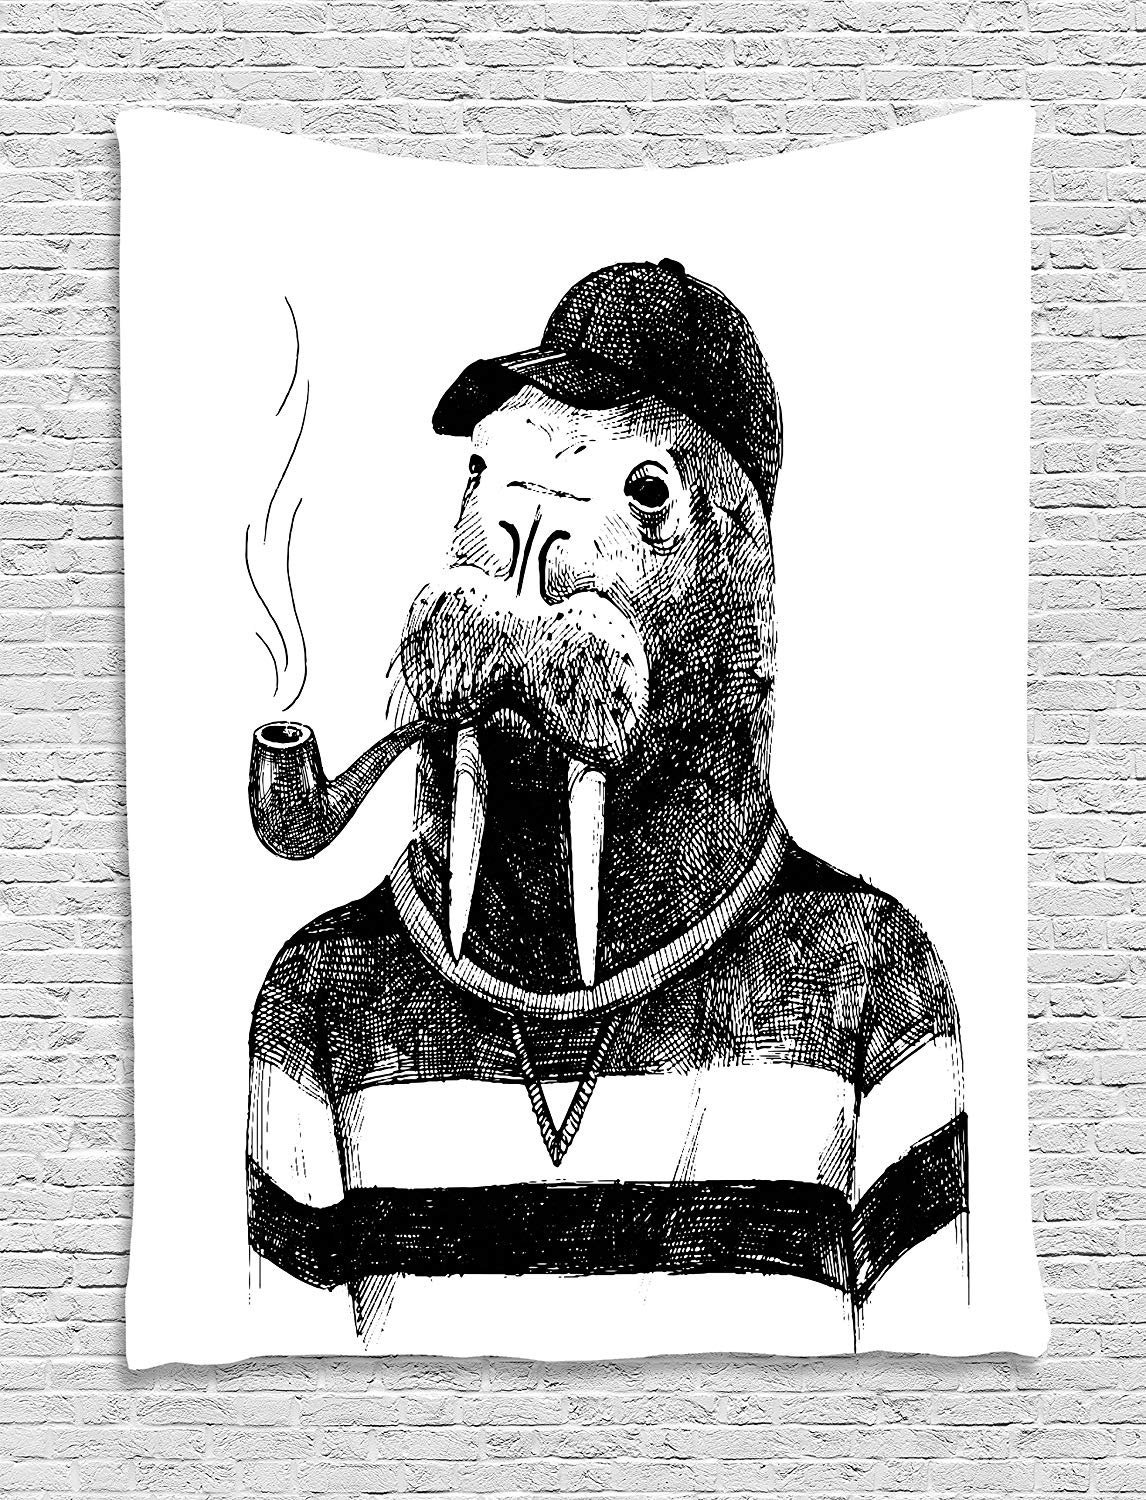 XHFITCLtd Indie Tapestry, Hand Drawn Dressed Up Walrus Animal Long Teeth Smoking Pipe Antromorphic Sketch Art, Wall Hanging for Bedroom Living Room Dorm, 60 W X 80 L Inches, Black White